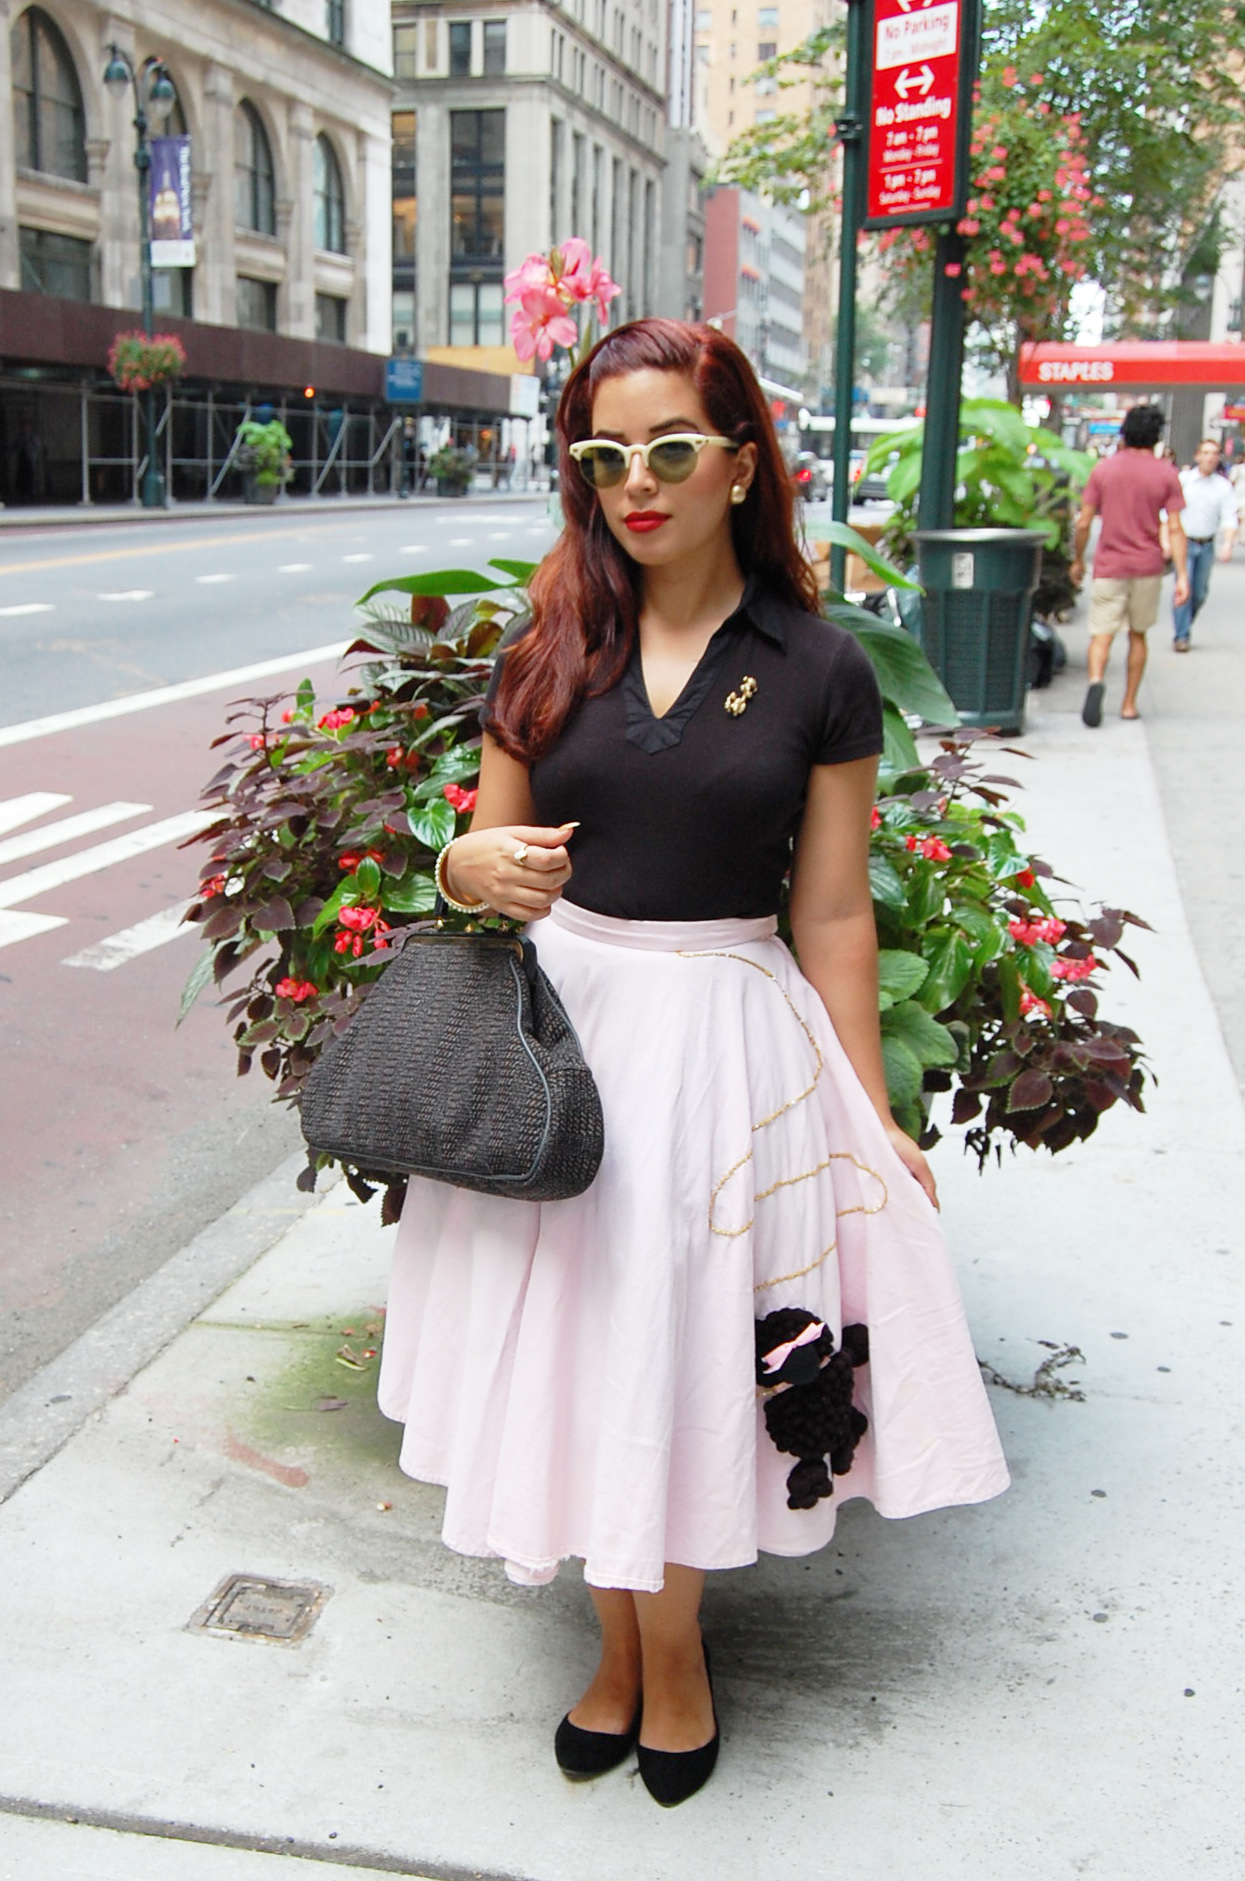 Pinup In A Poodle Skirt